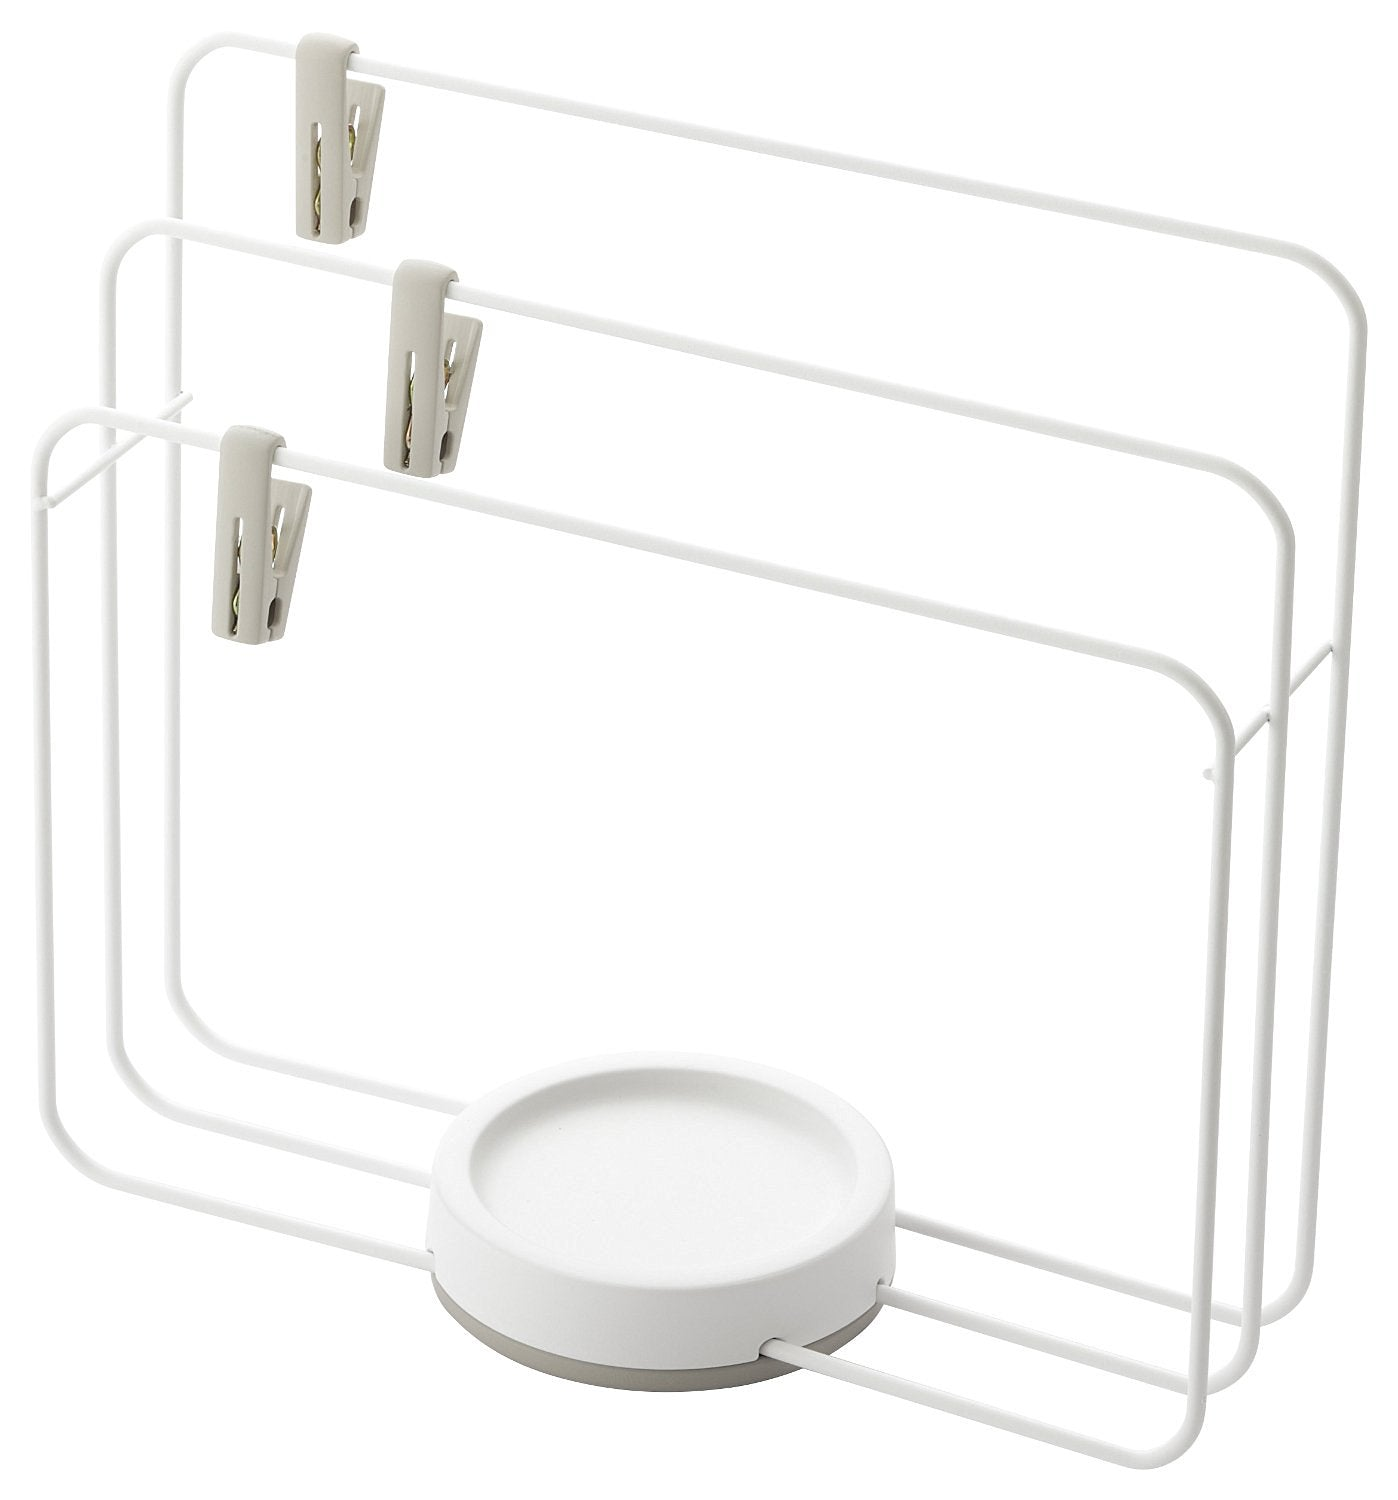 Liberalista Dish Cloth Hanger Rack - 3 Clips